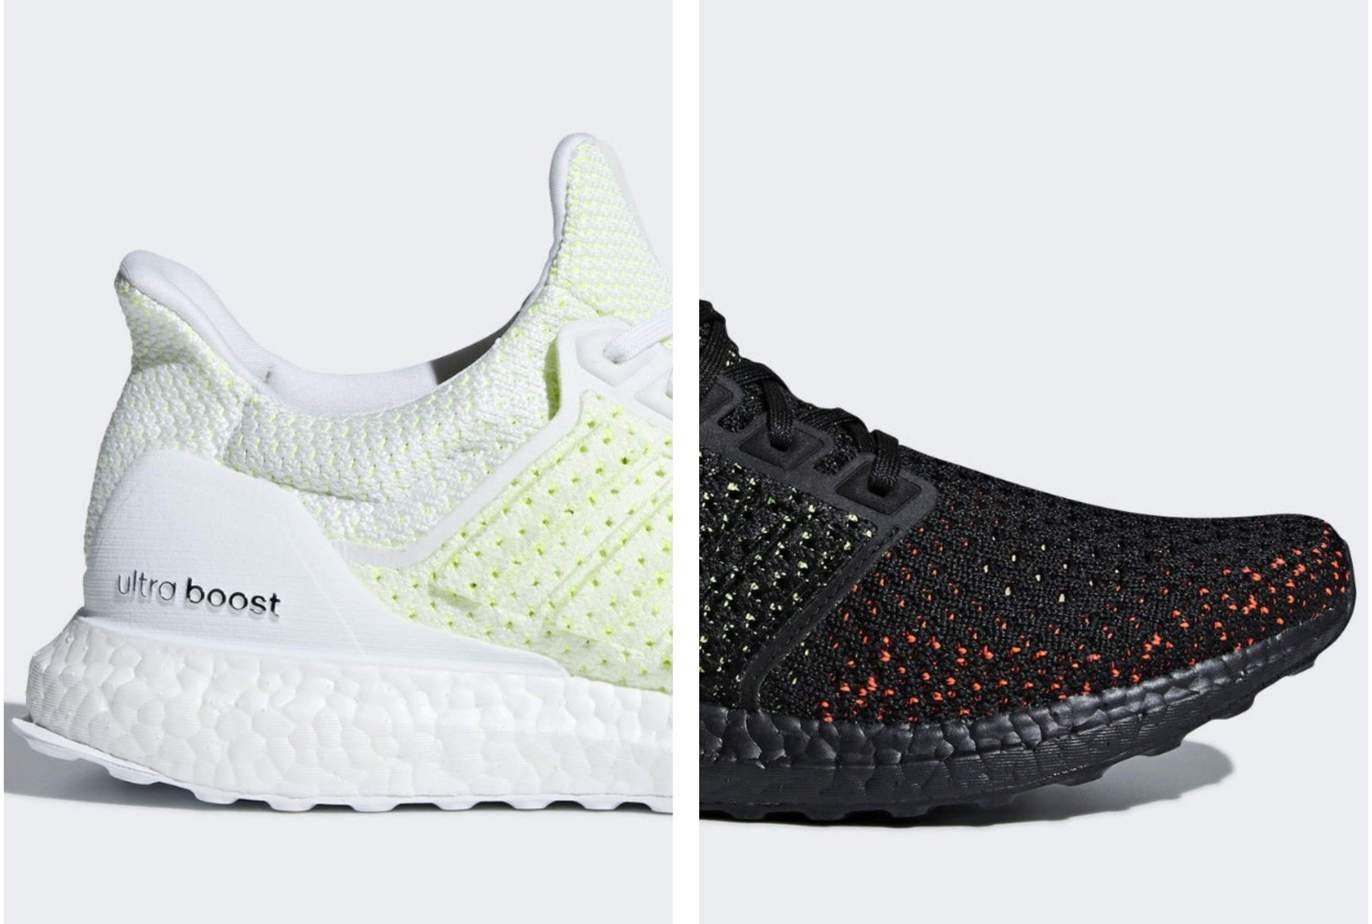 72d87ed4af784 The adidas Ultra Boost Clima is off to an incredible start. Fans of the  running silhouette are calling it one of the most comfortable iterations of  the ...